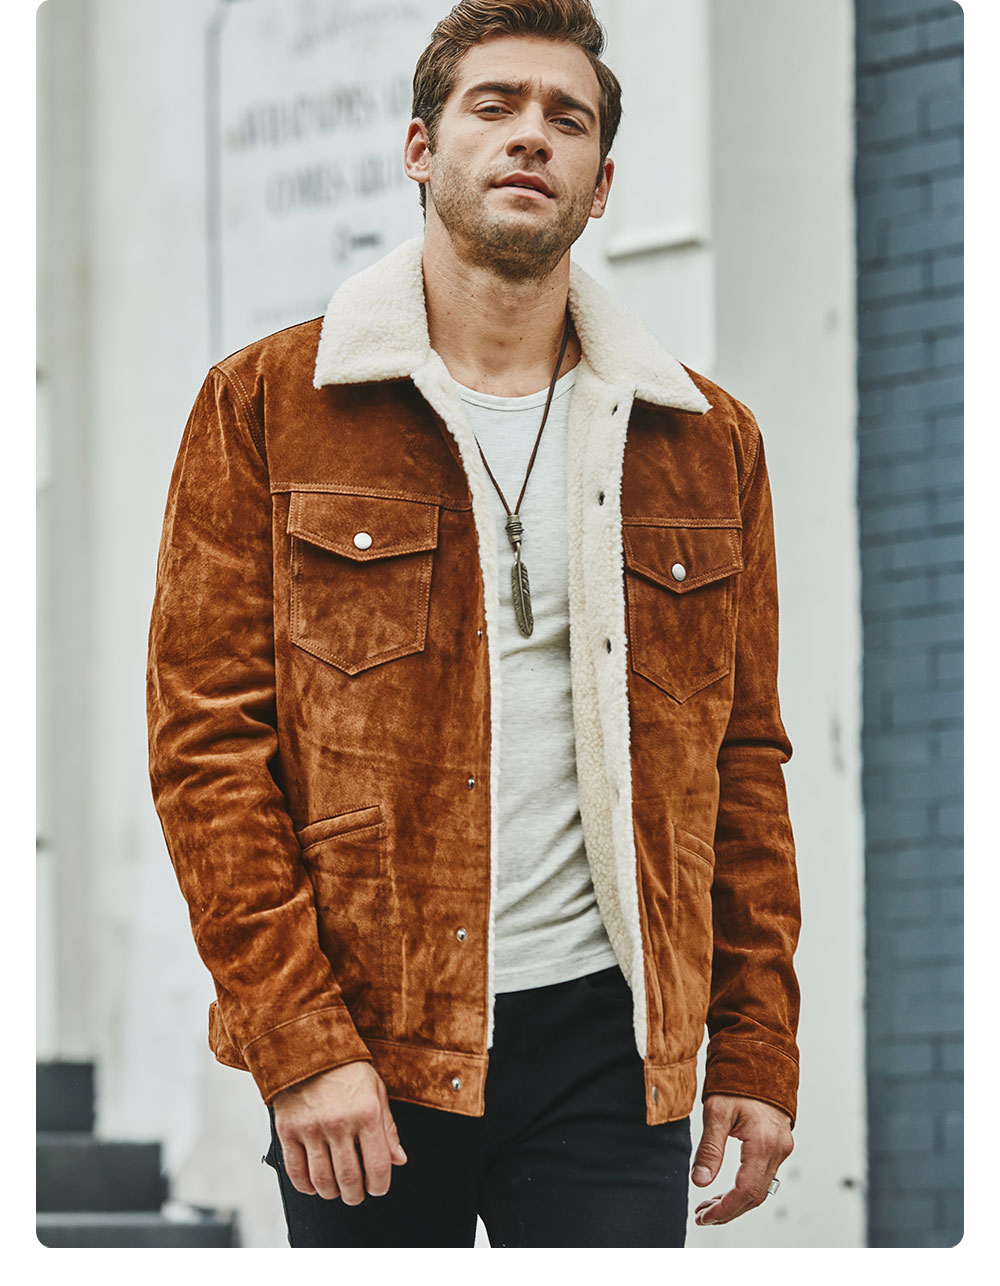 Ha3ea4fc770464141a65e27726d3afa32j FLAVOR New Men's Real Leather Jacket Genuine Leather With Faux Shearling Warm Coat Men